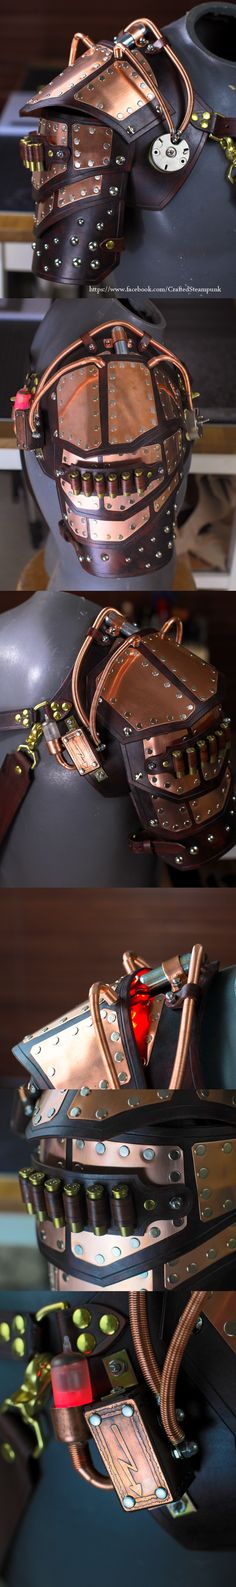 Steampunk, Powered Pauldron by CraftedSteampunk.deviantart.com on @DeviantArt